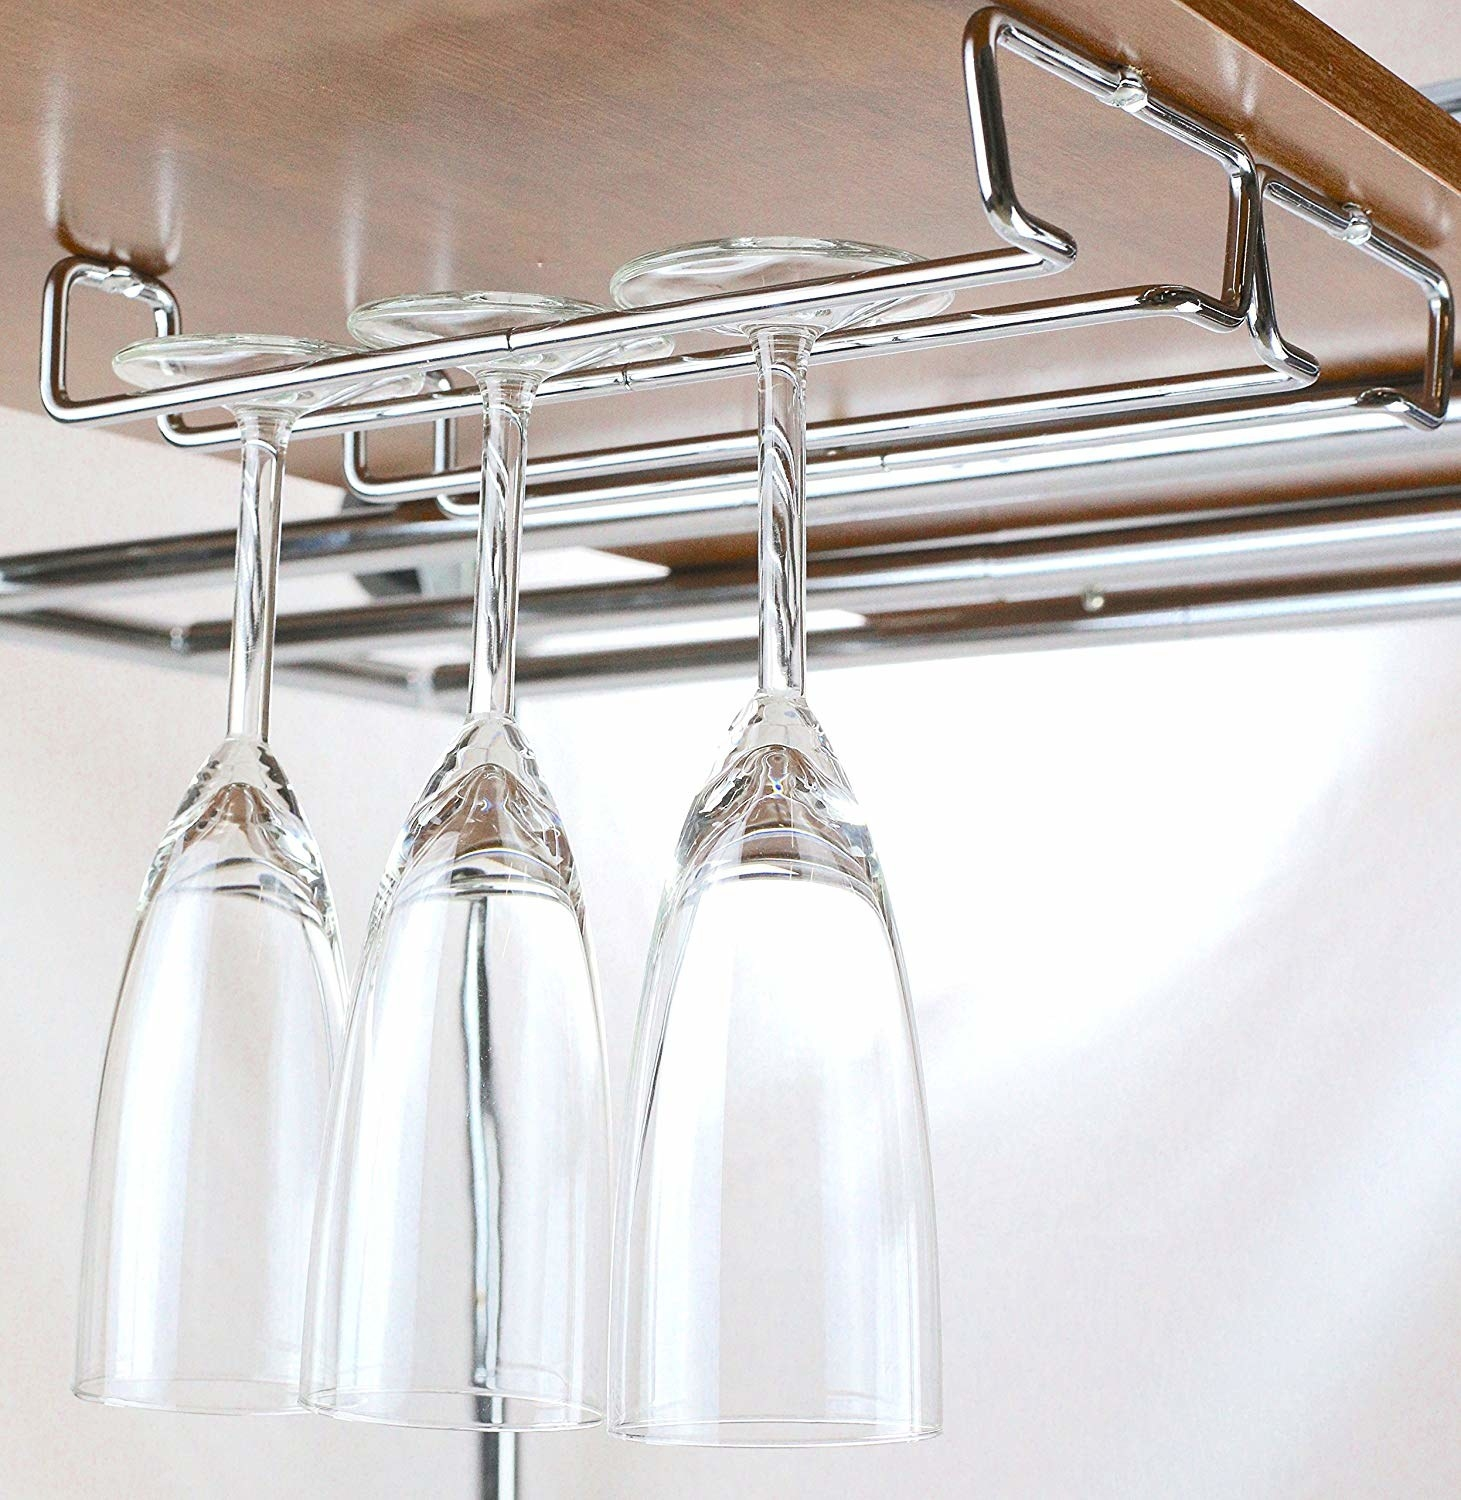 silver wine glass rack mounted on the underside of a kitchen cabinet so glasses are stored vertically and upside down